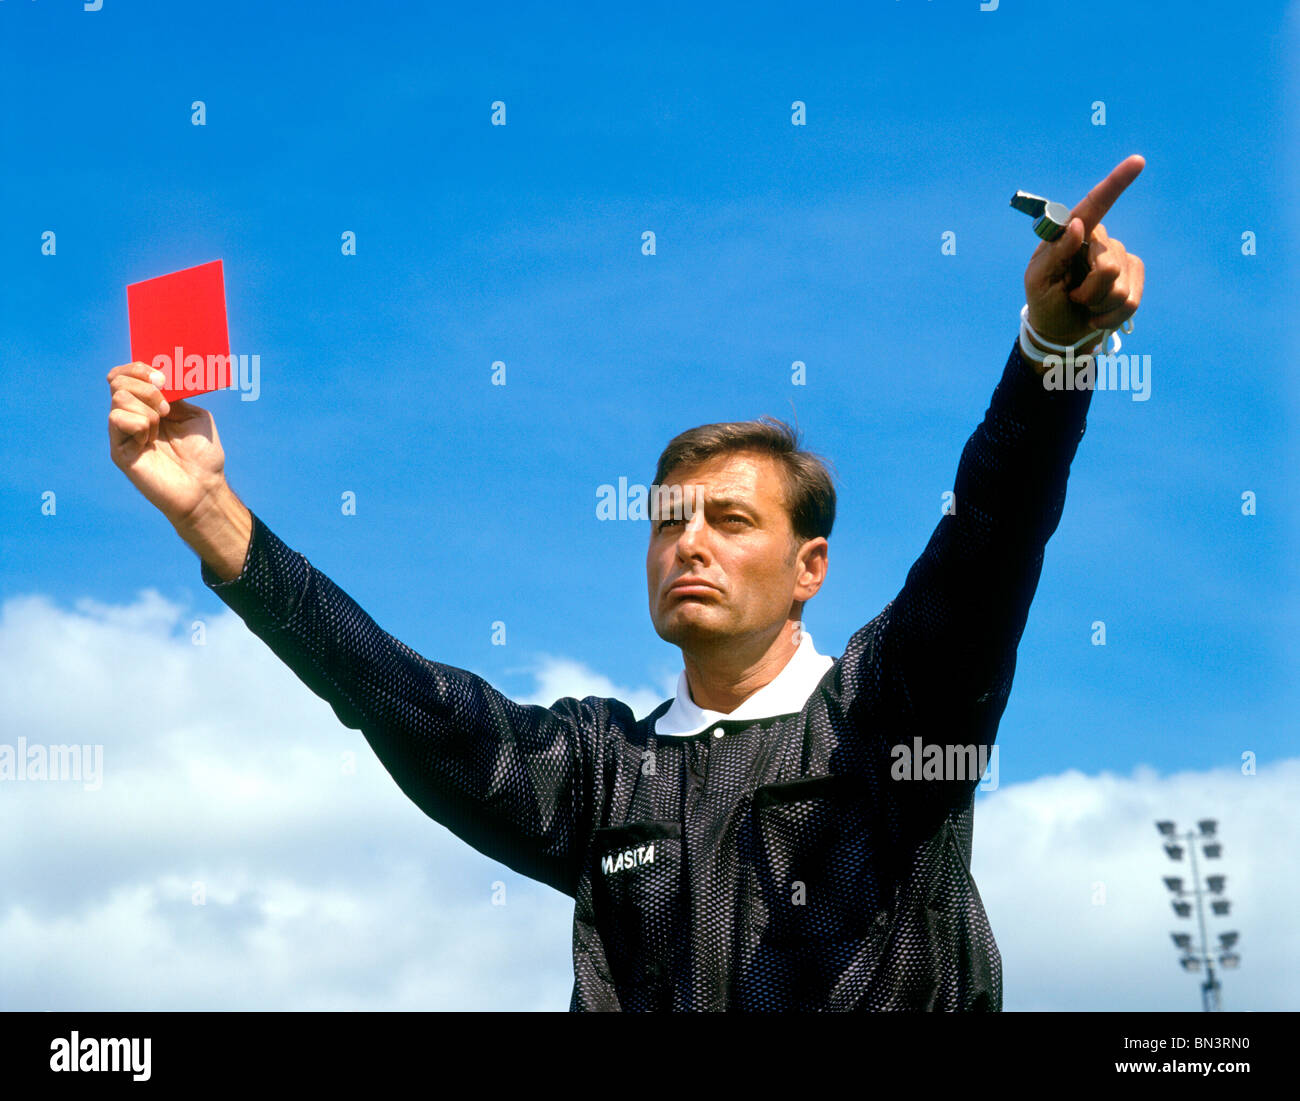 Soccer referee holding up red sending off card - Stock Image